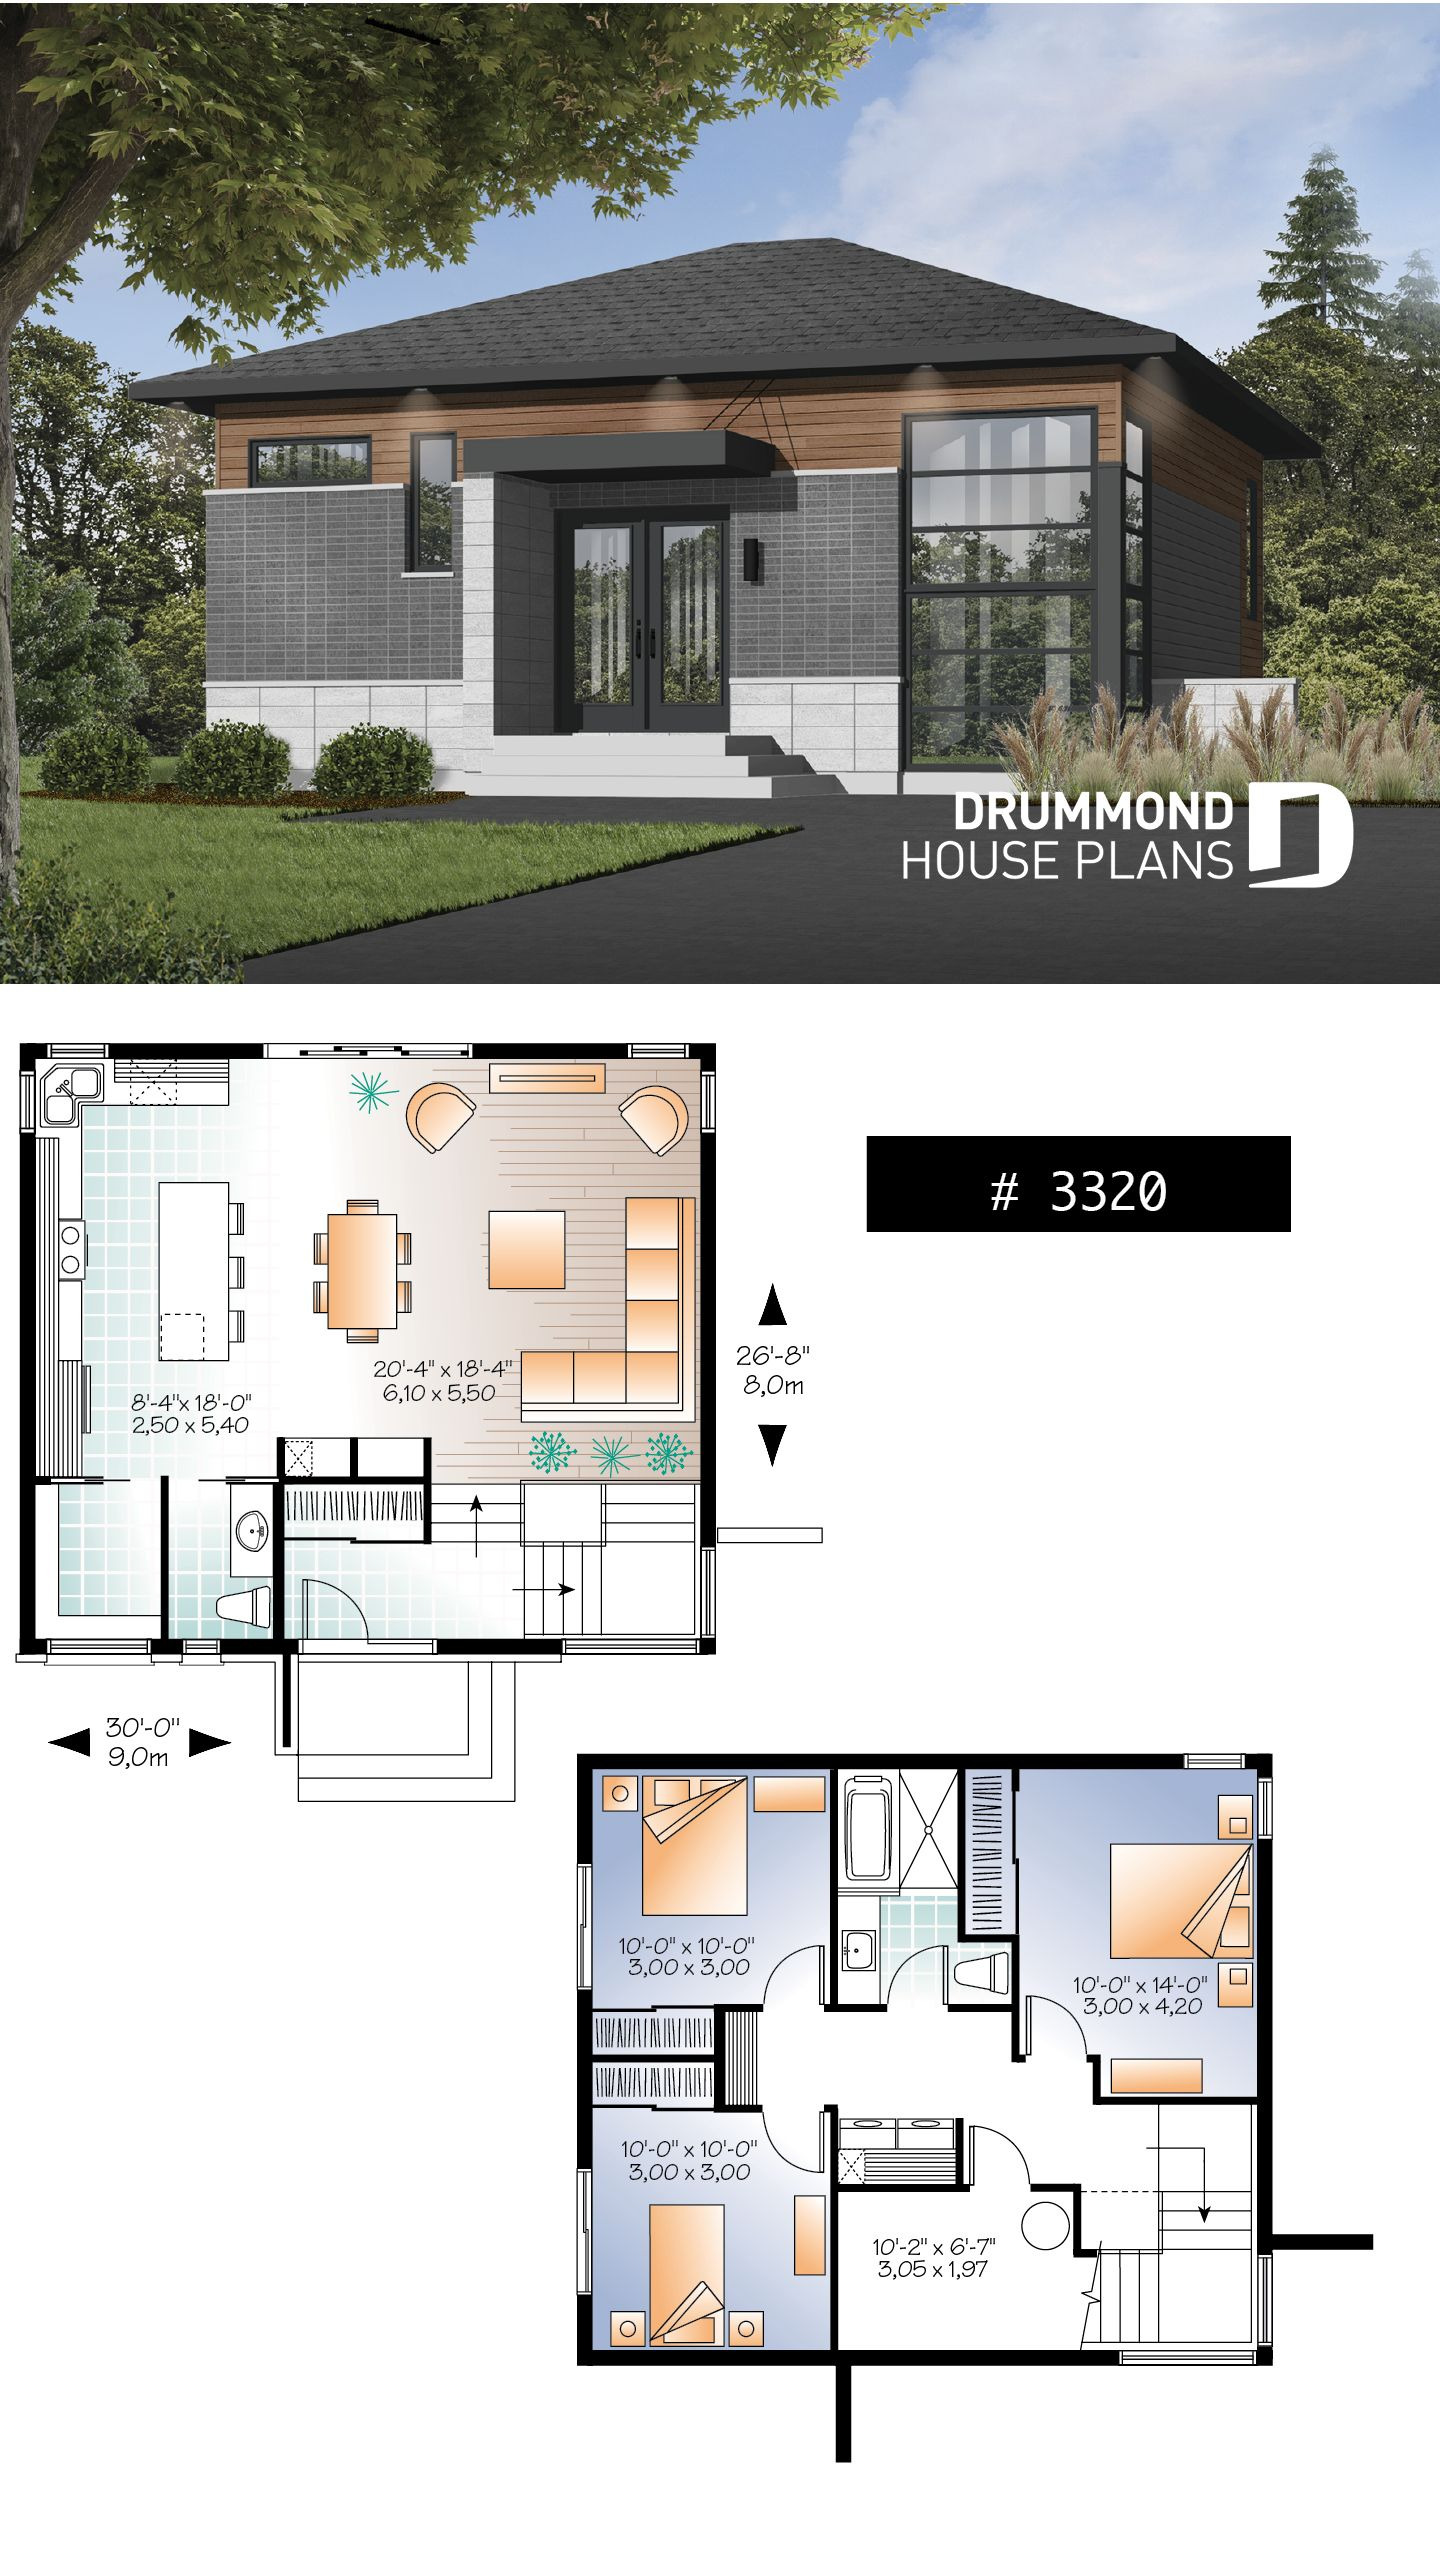 Cost Efficient House Plans Inspirational Low Cost House Designs and Floor Plans Kumpalo